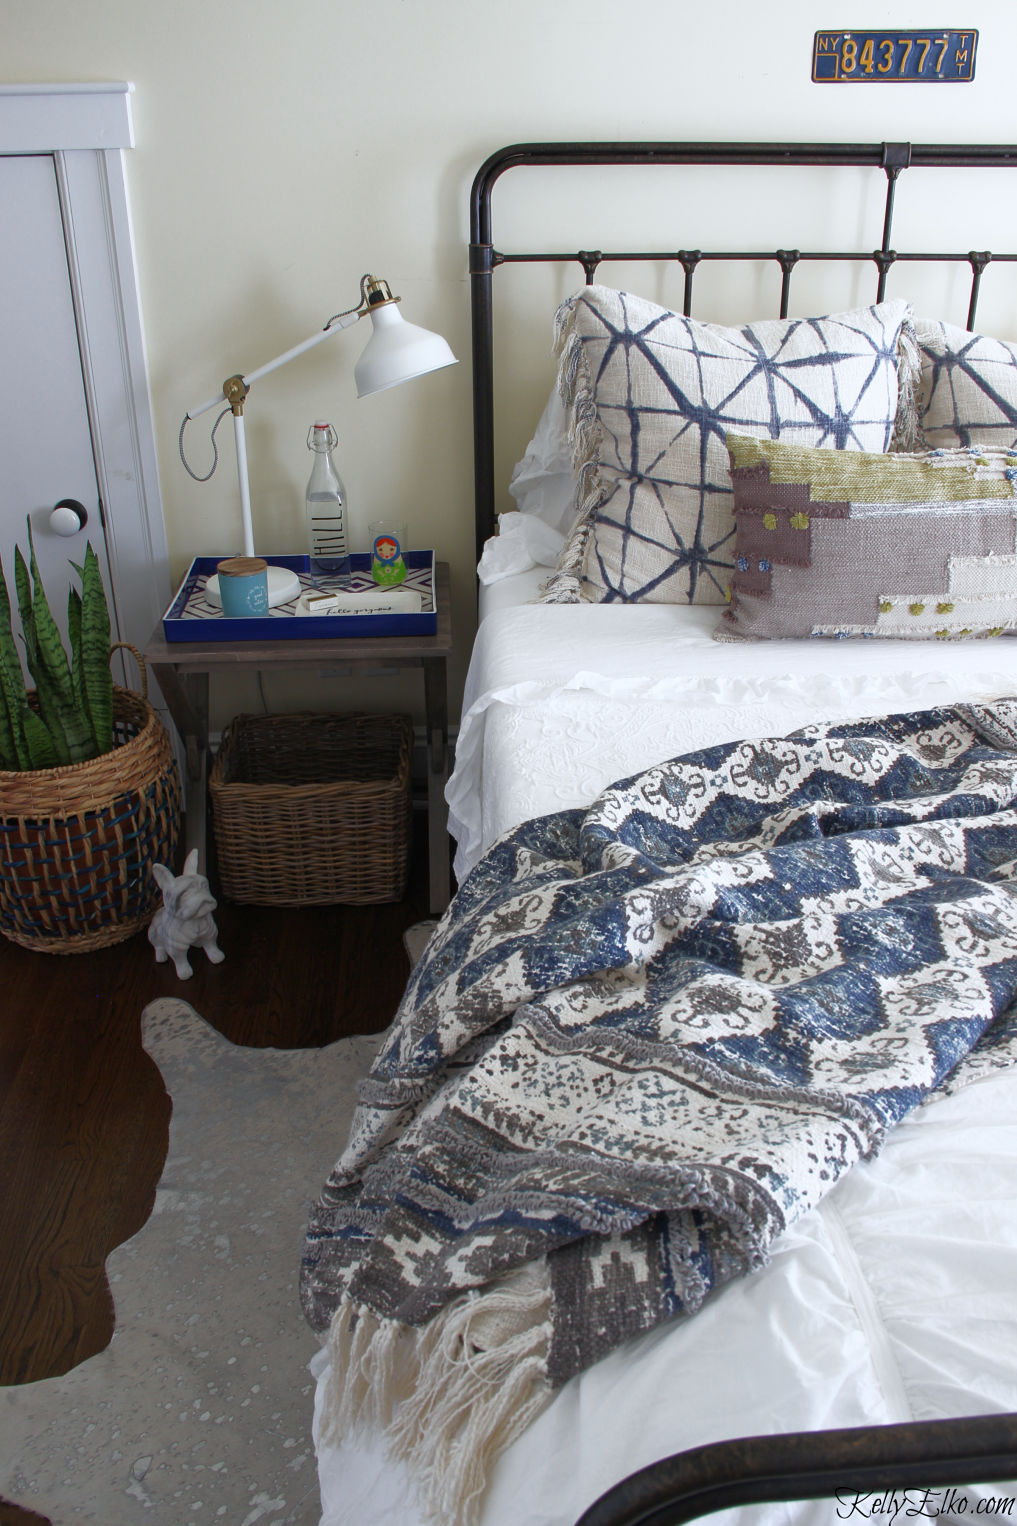 Guest Bedroom Decor - love the iron bed and white bedding with lots of fun pillows and throw kellyelko.com #bedroom #bedroomdecor #bedroomfurniture #bedroomdecorating #guestbedroom #bohodecor #boho